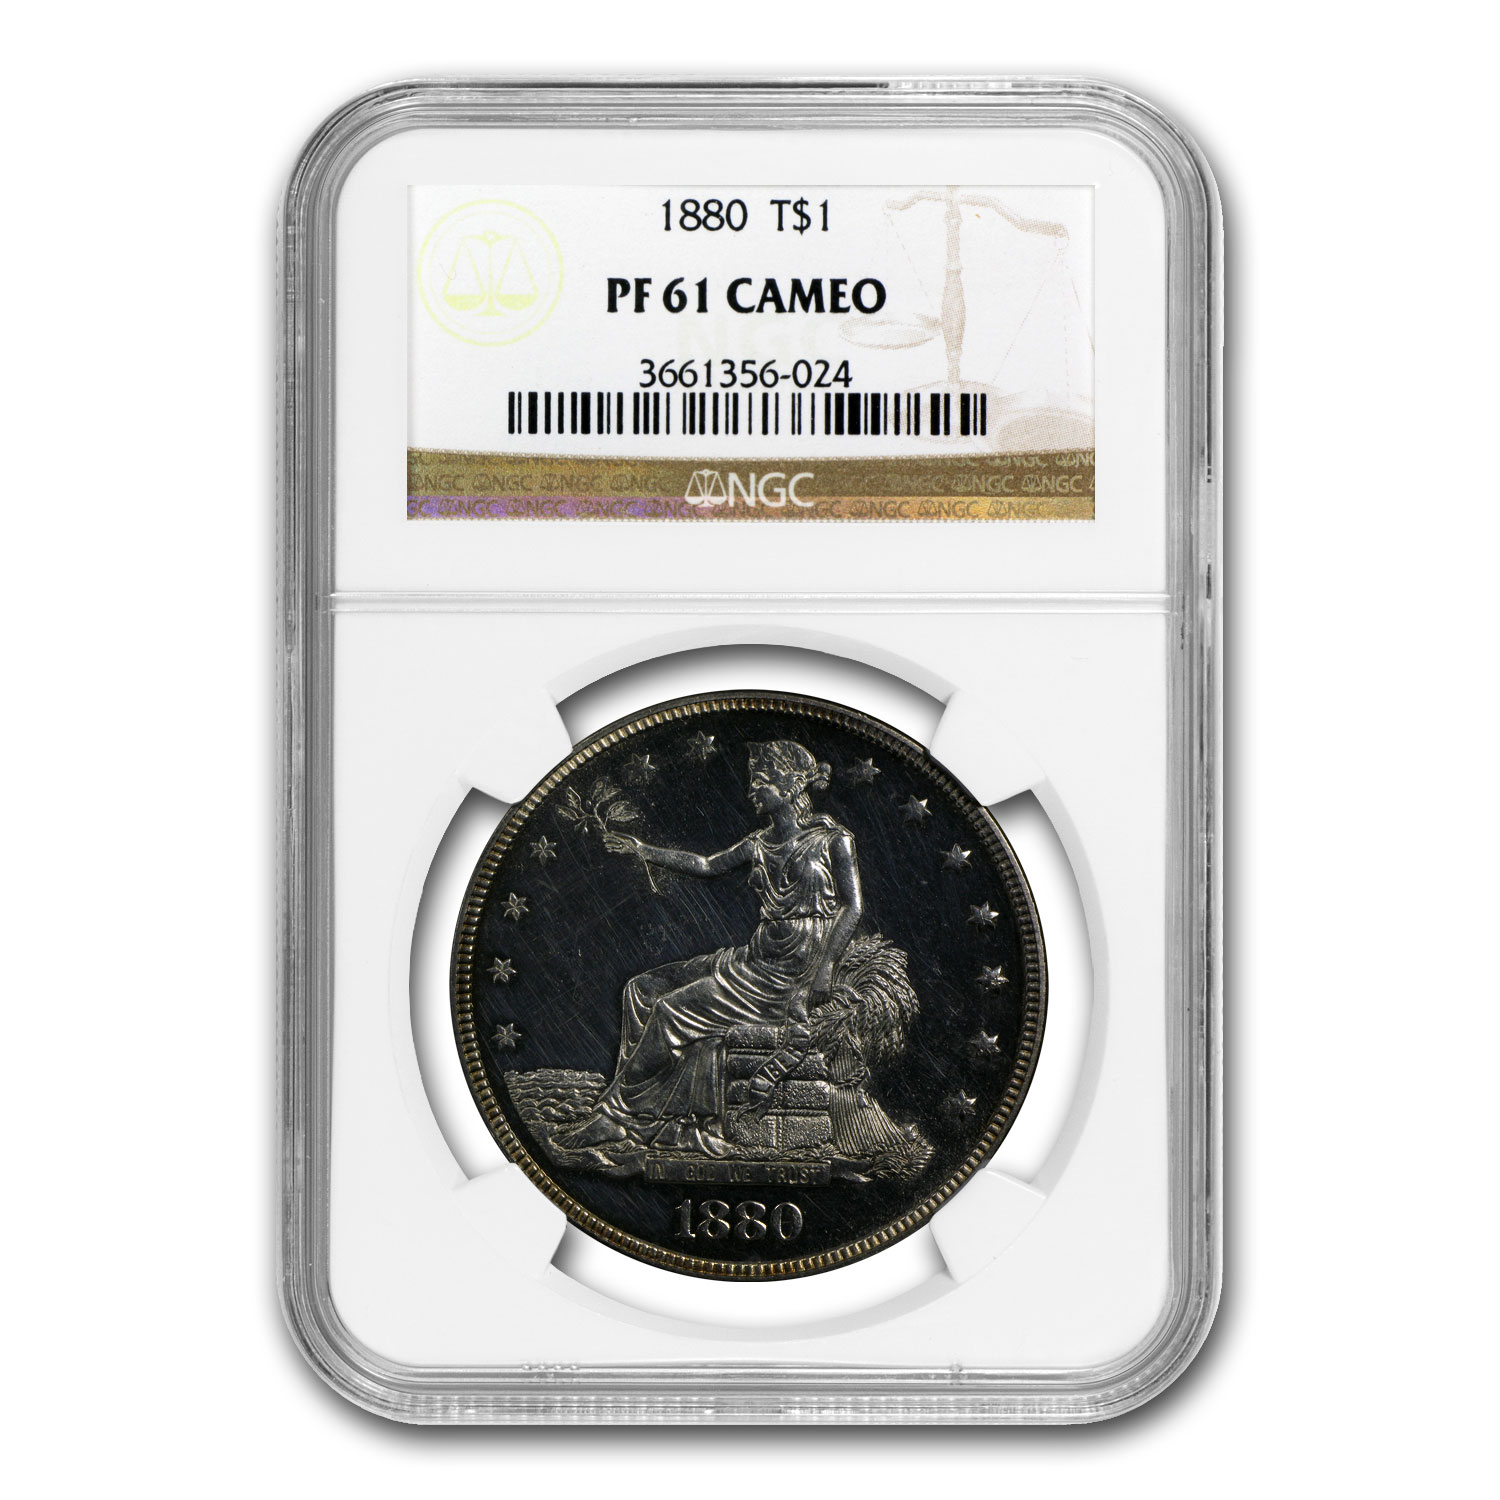 1880 Trade Dollar PF-61 Cameo NGC